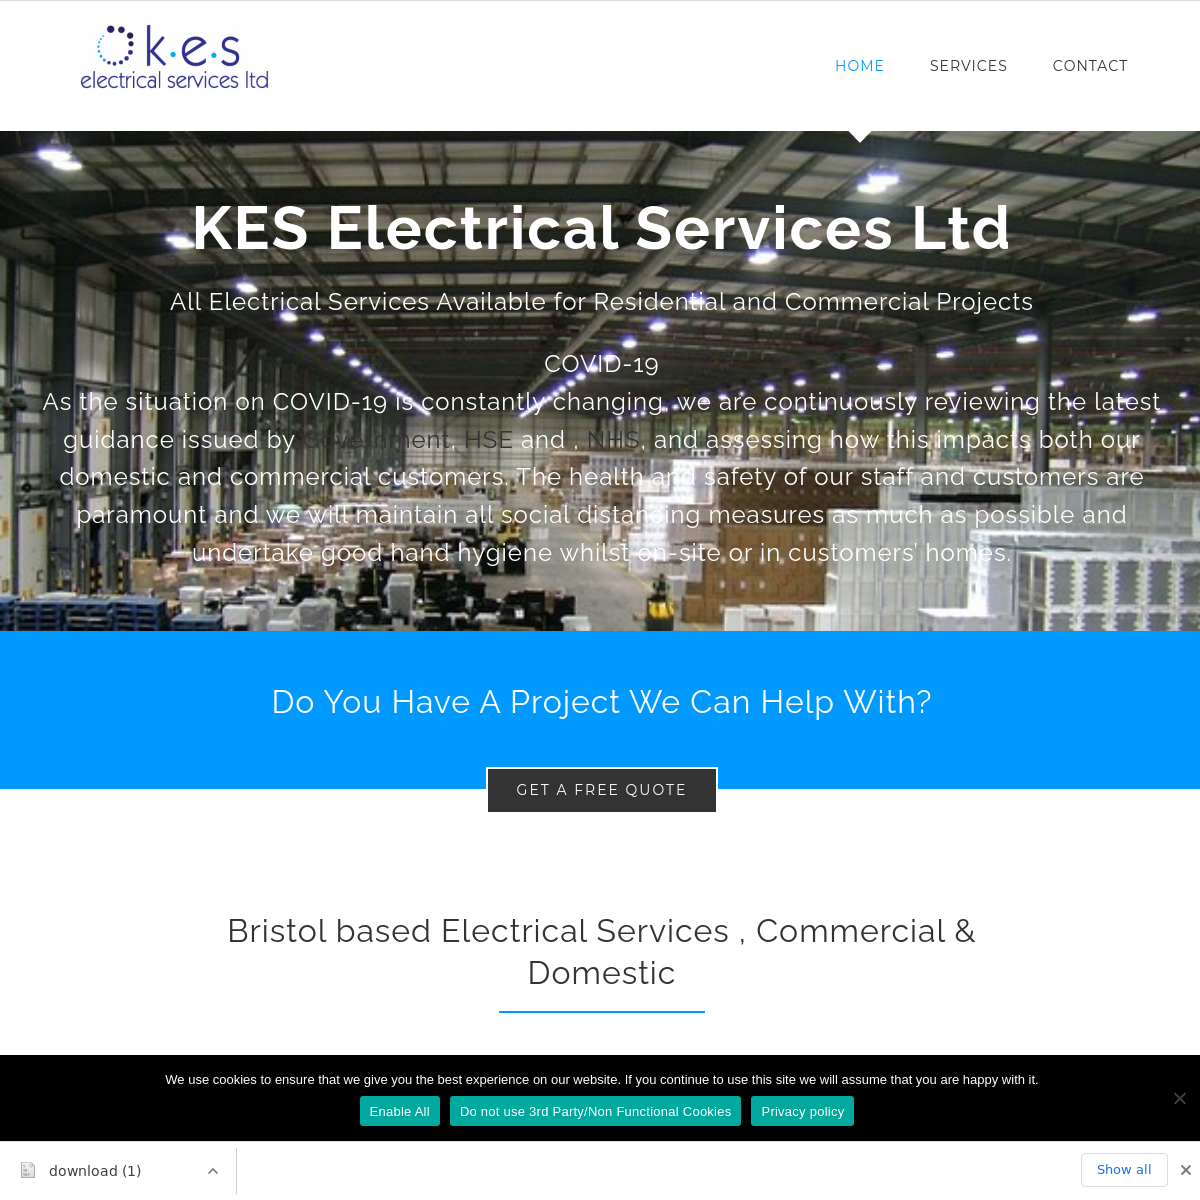 http://keselectrical.co.uk